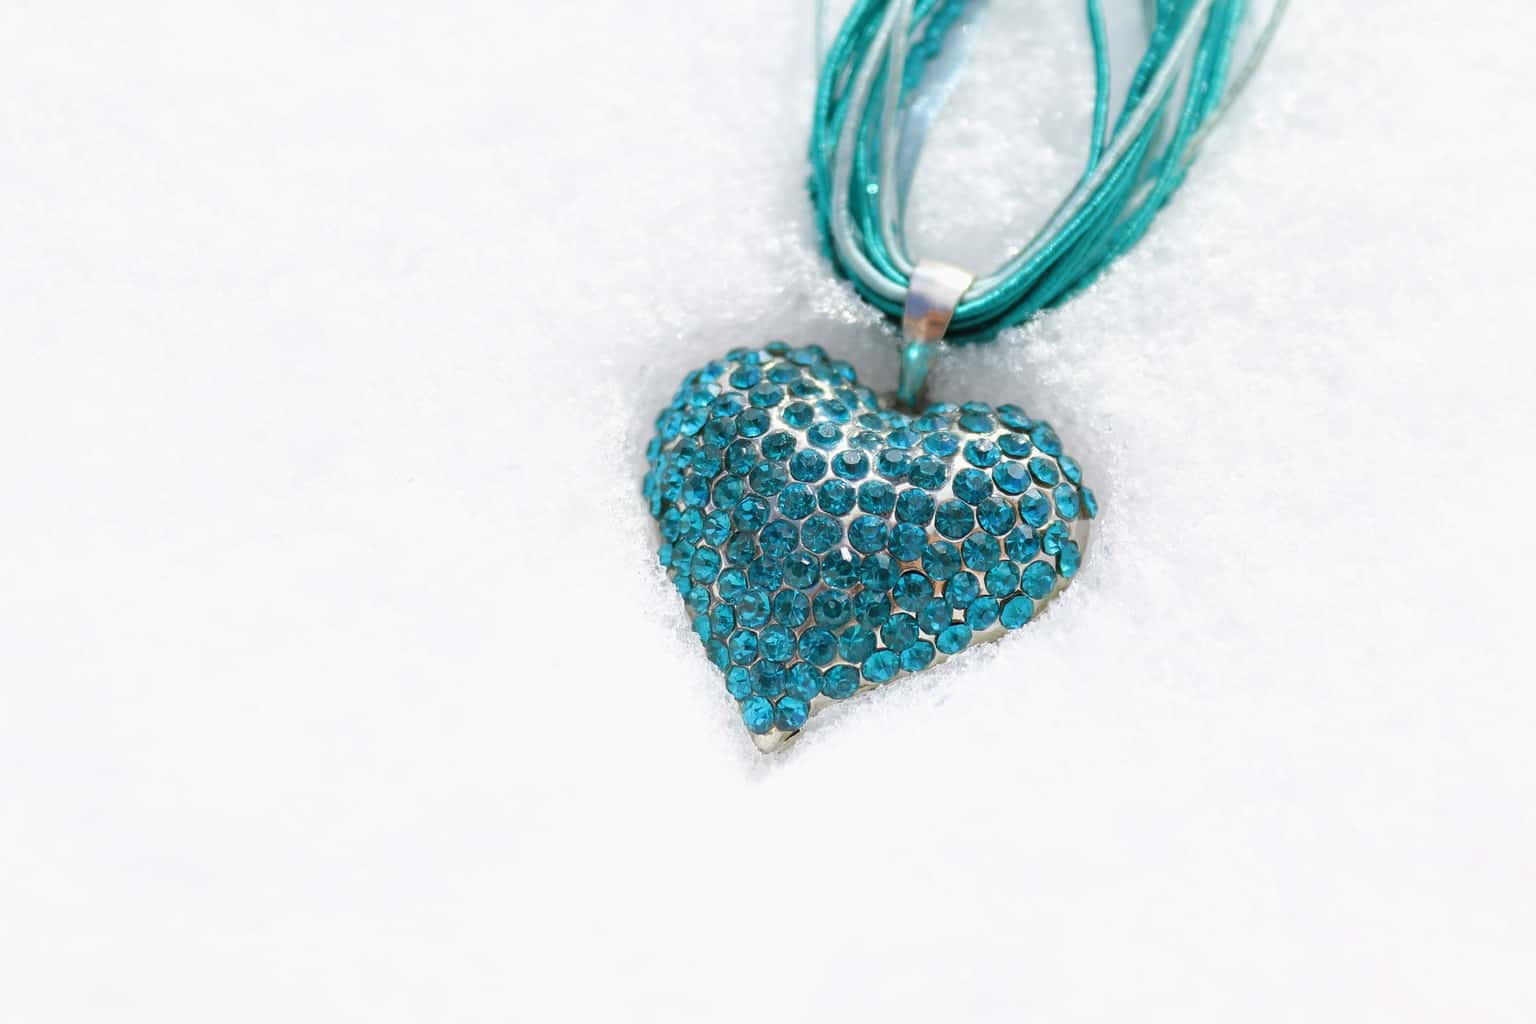 A A heart shaped jewelry with blue rhinestones